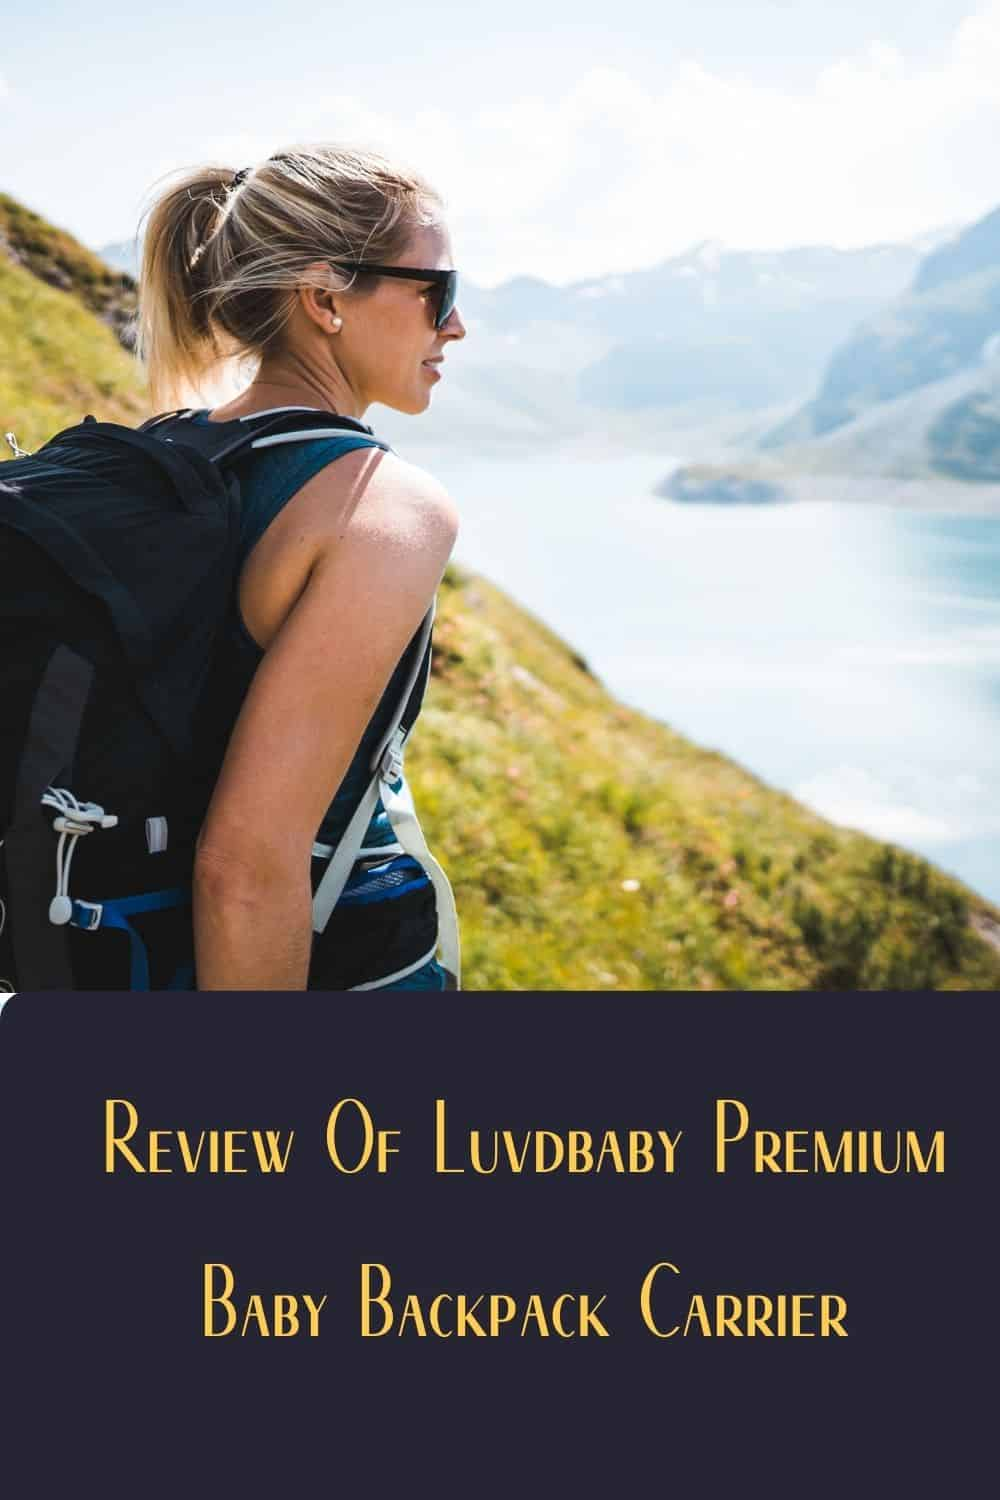 Pinterest image for Review Of Luvdbaby Premium Baby Backpack Carrier